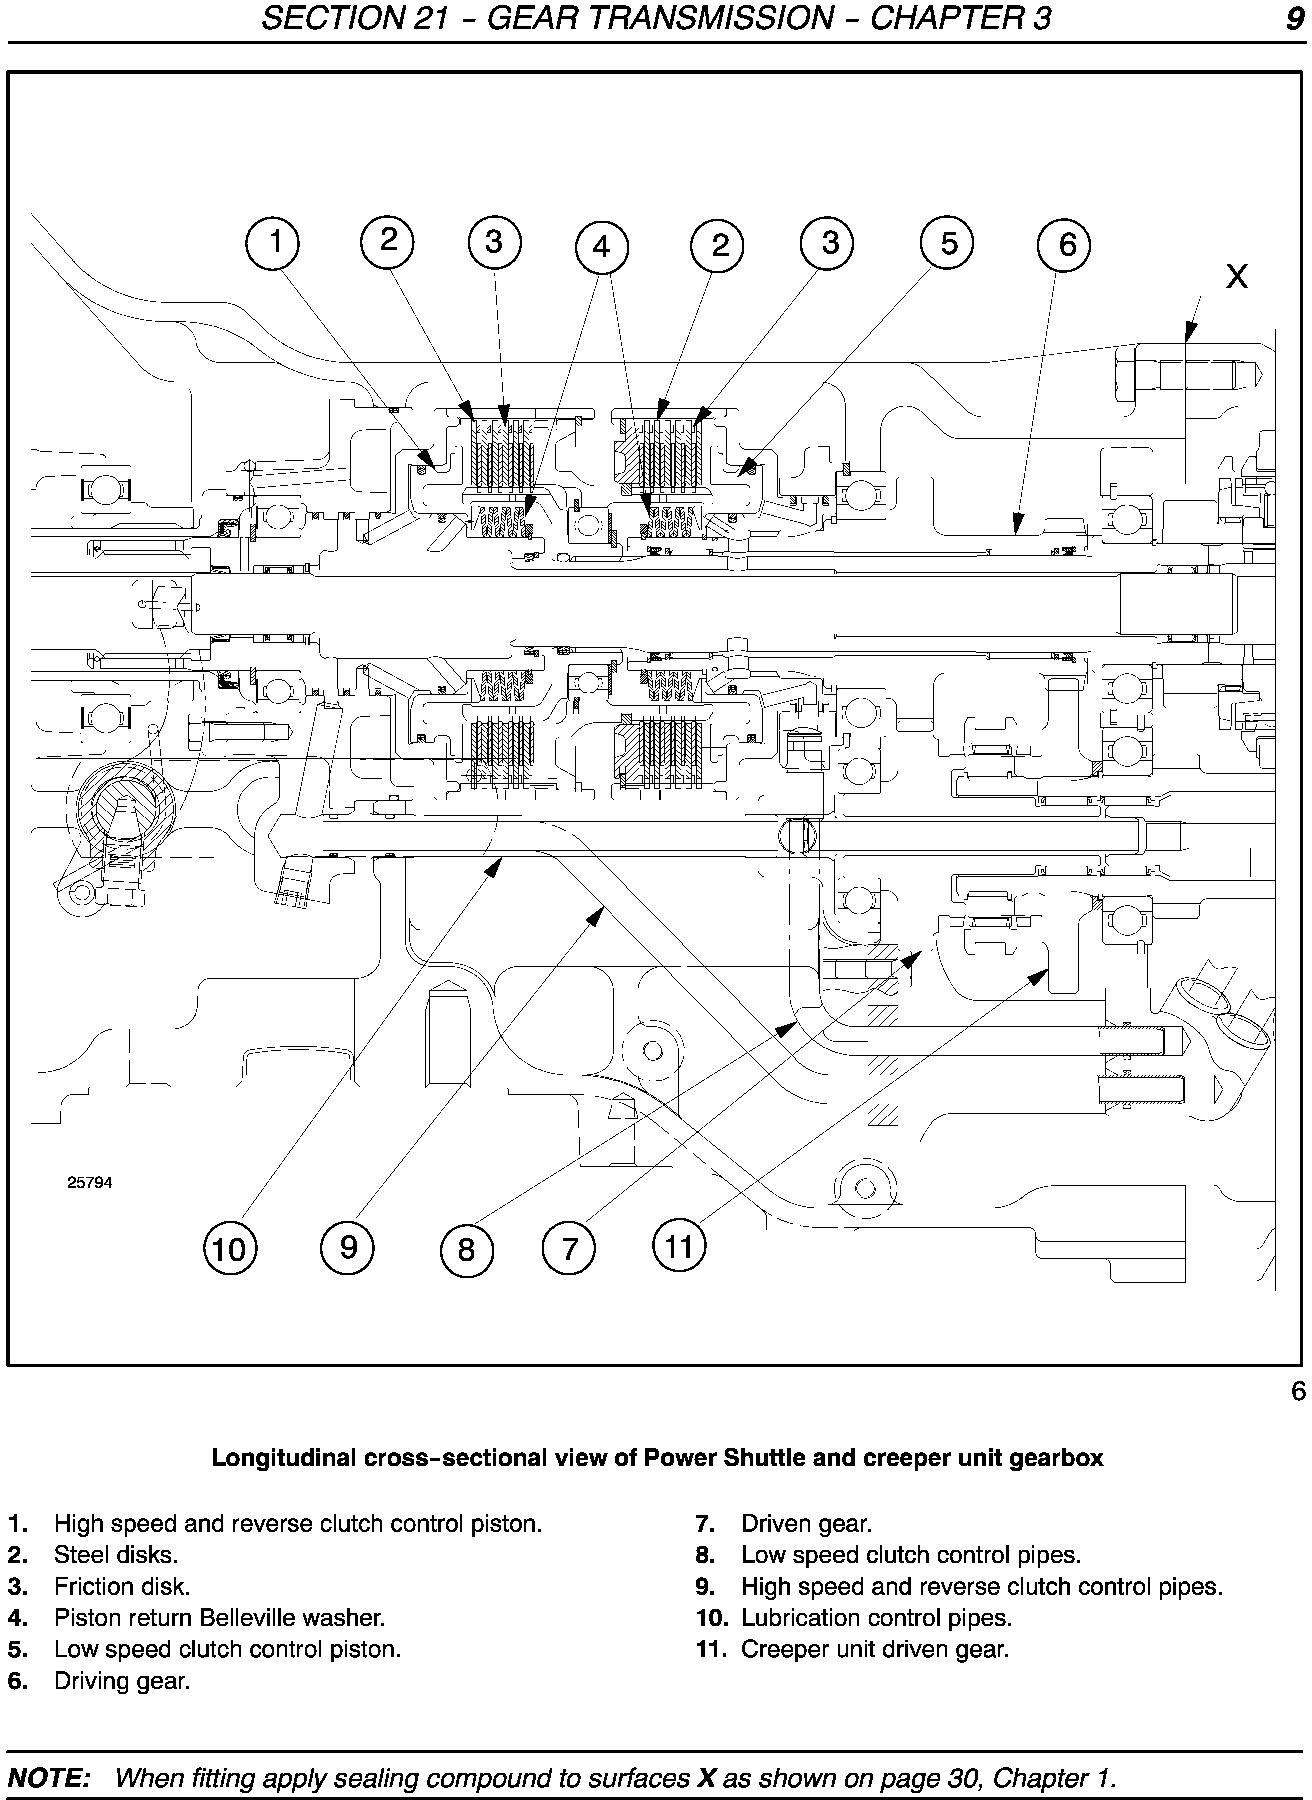 New Holland T4020, T4030, T4040, T4050 Deluxe/SuperSteer Service Manual - 2